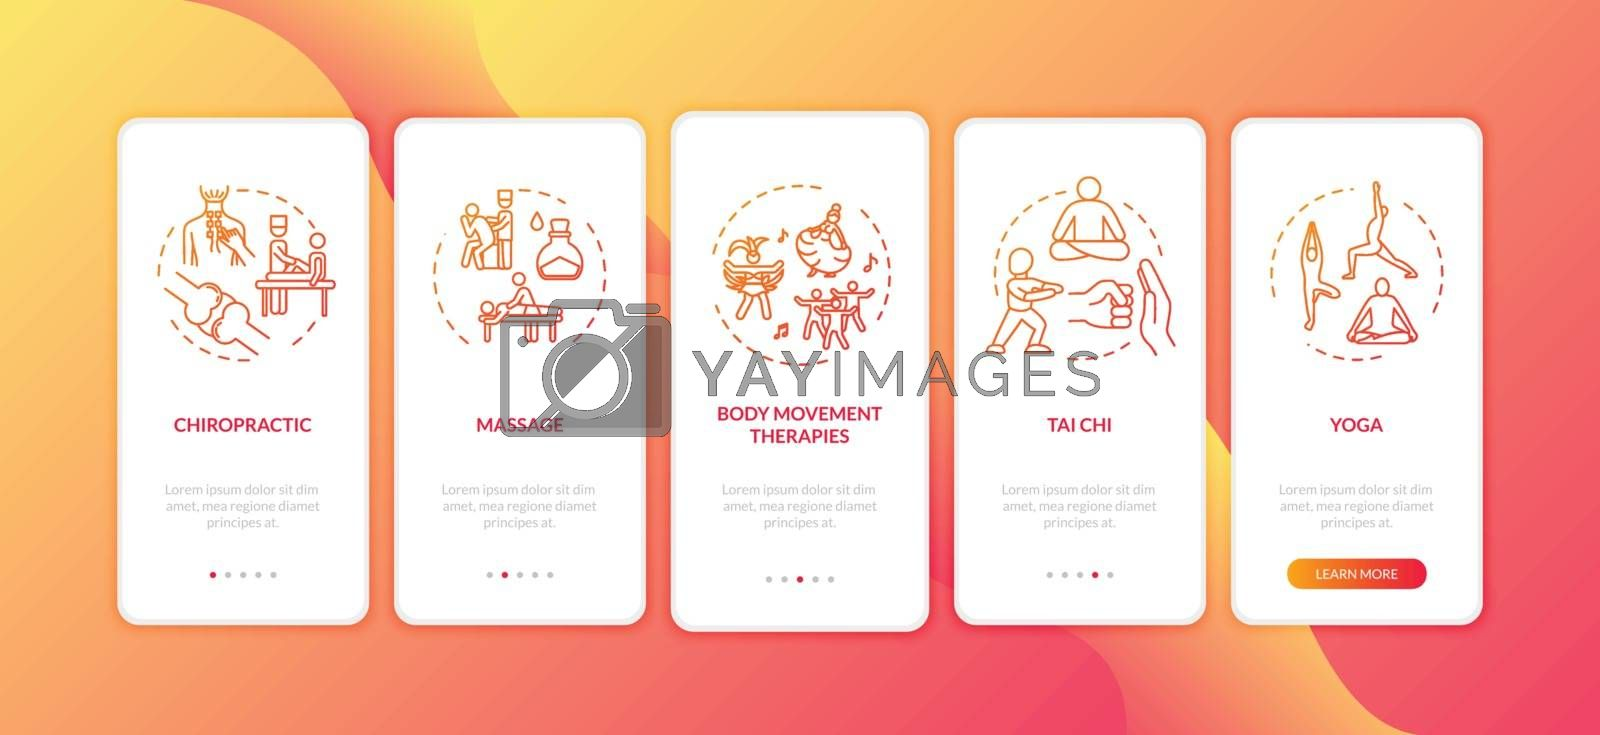 Sensory medicine onboarding mobile app page screen with concepts. Complementary physical therapies walkthrough five steps graphic instructions. UI vector template with RGB color illustrations by bsd